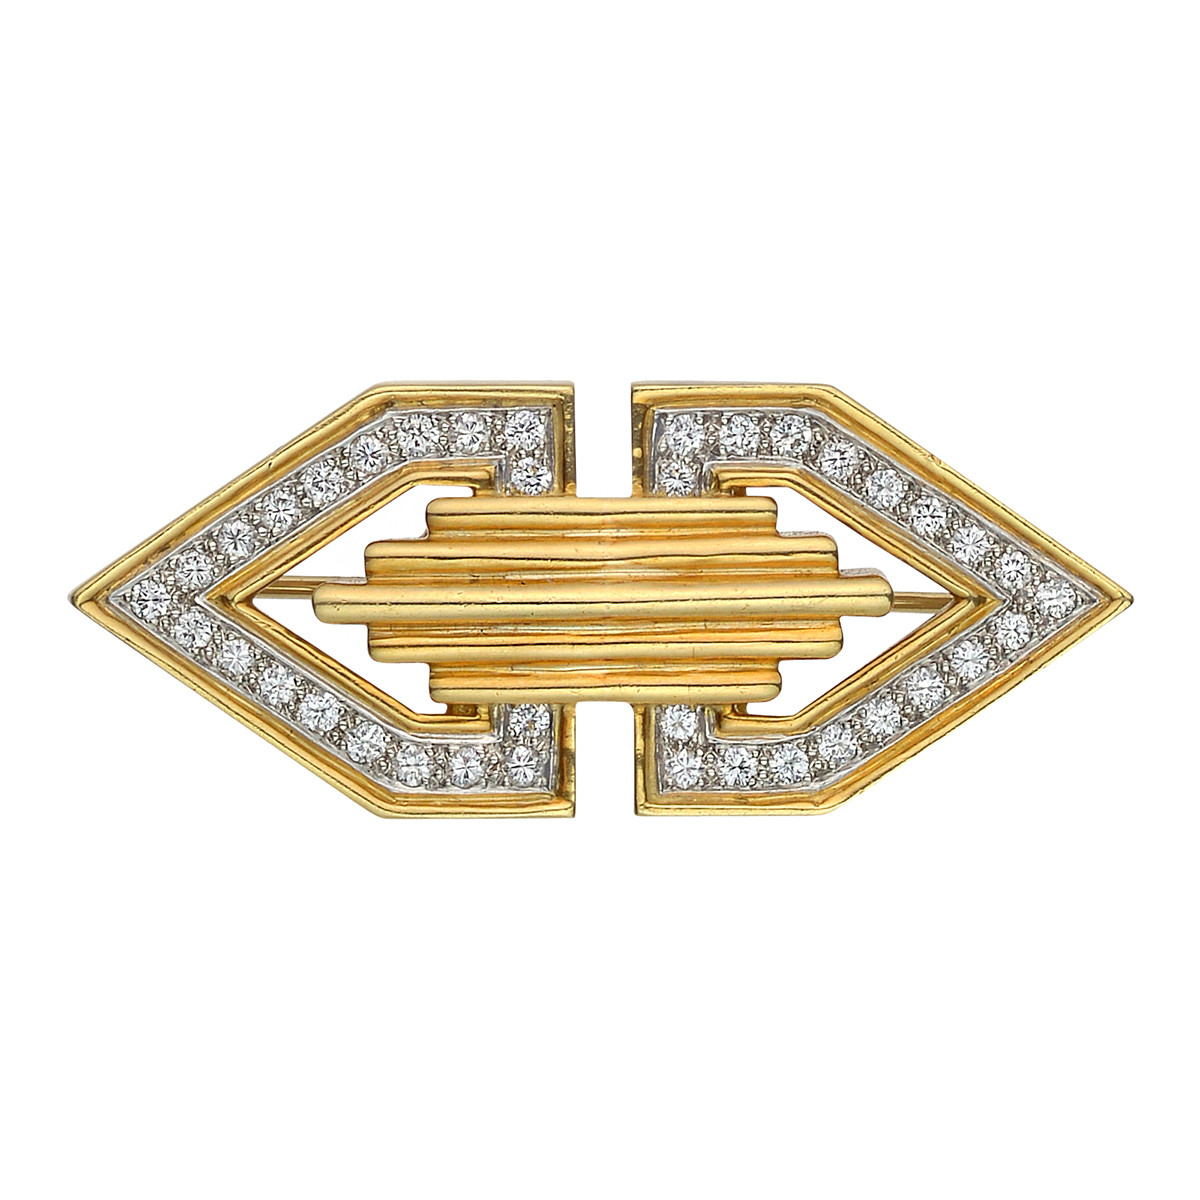 Deco 18k Yellow Gold & Diamond Clip Brooch